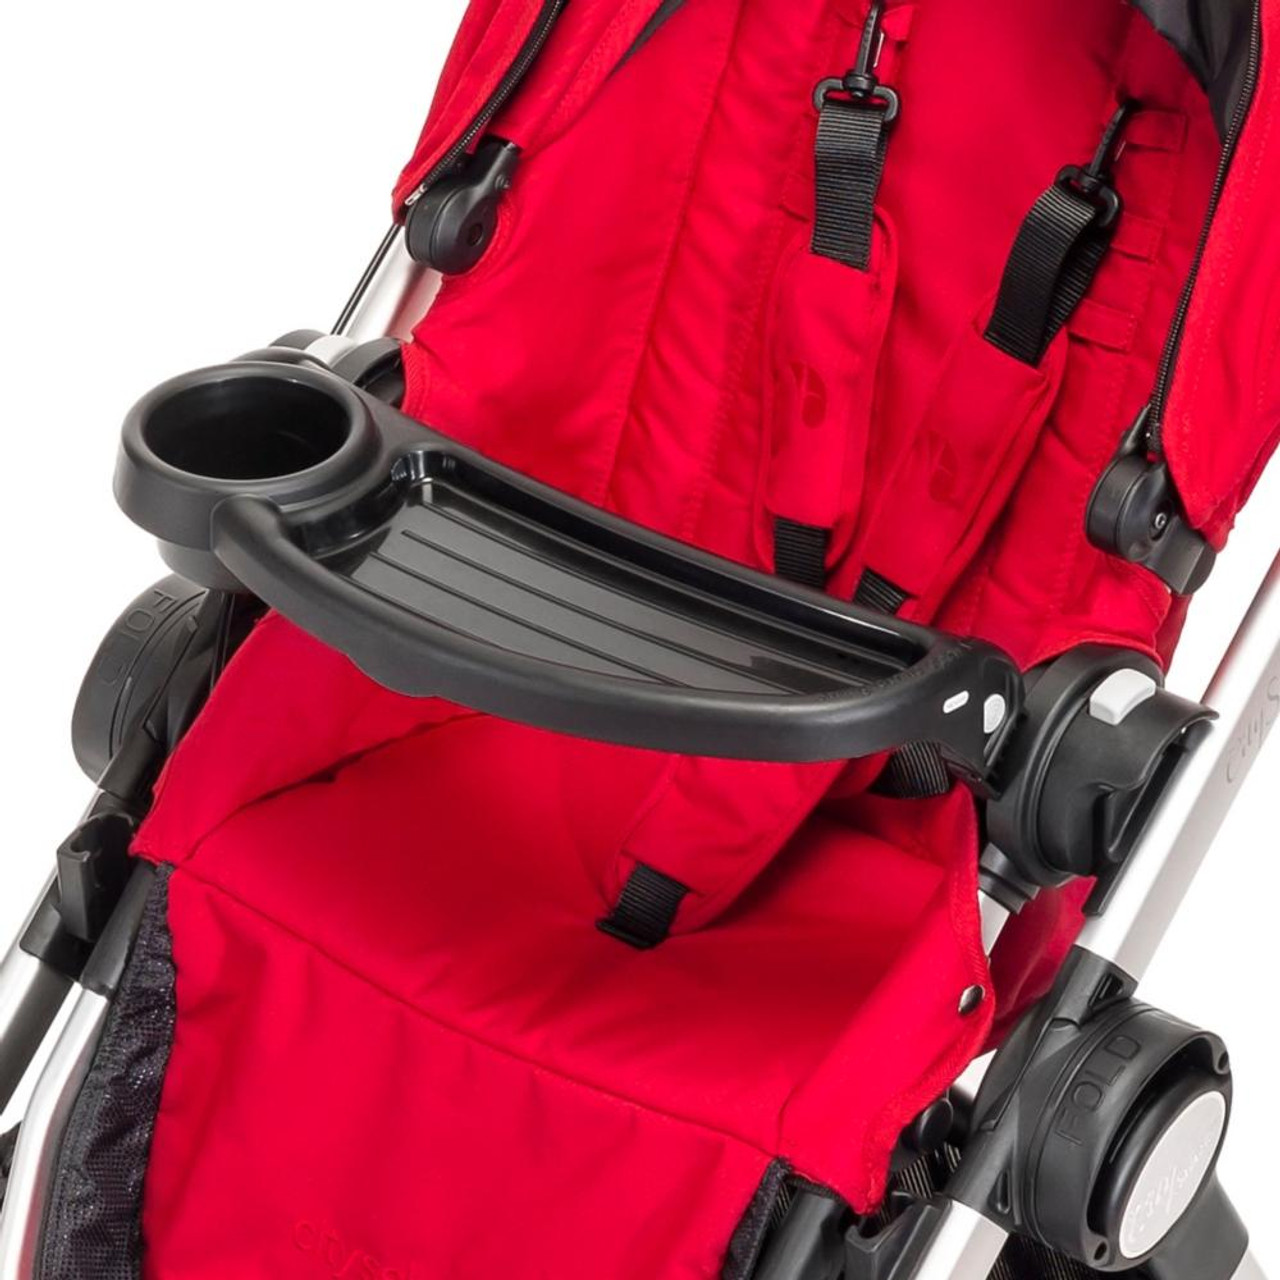 Baby Jogger City Select Child Tray - Every child can easily find his or her drink and snacks with the City Select Child Tray.